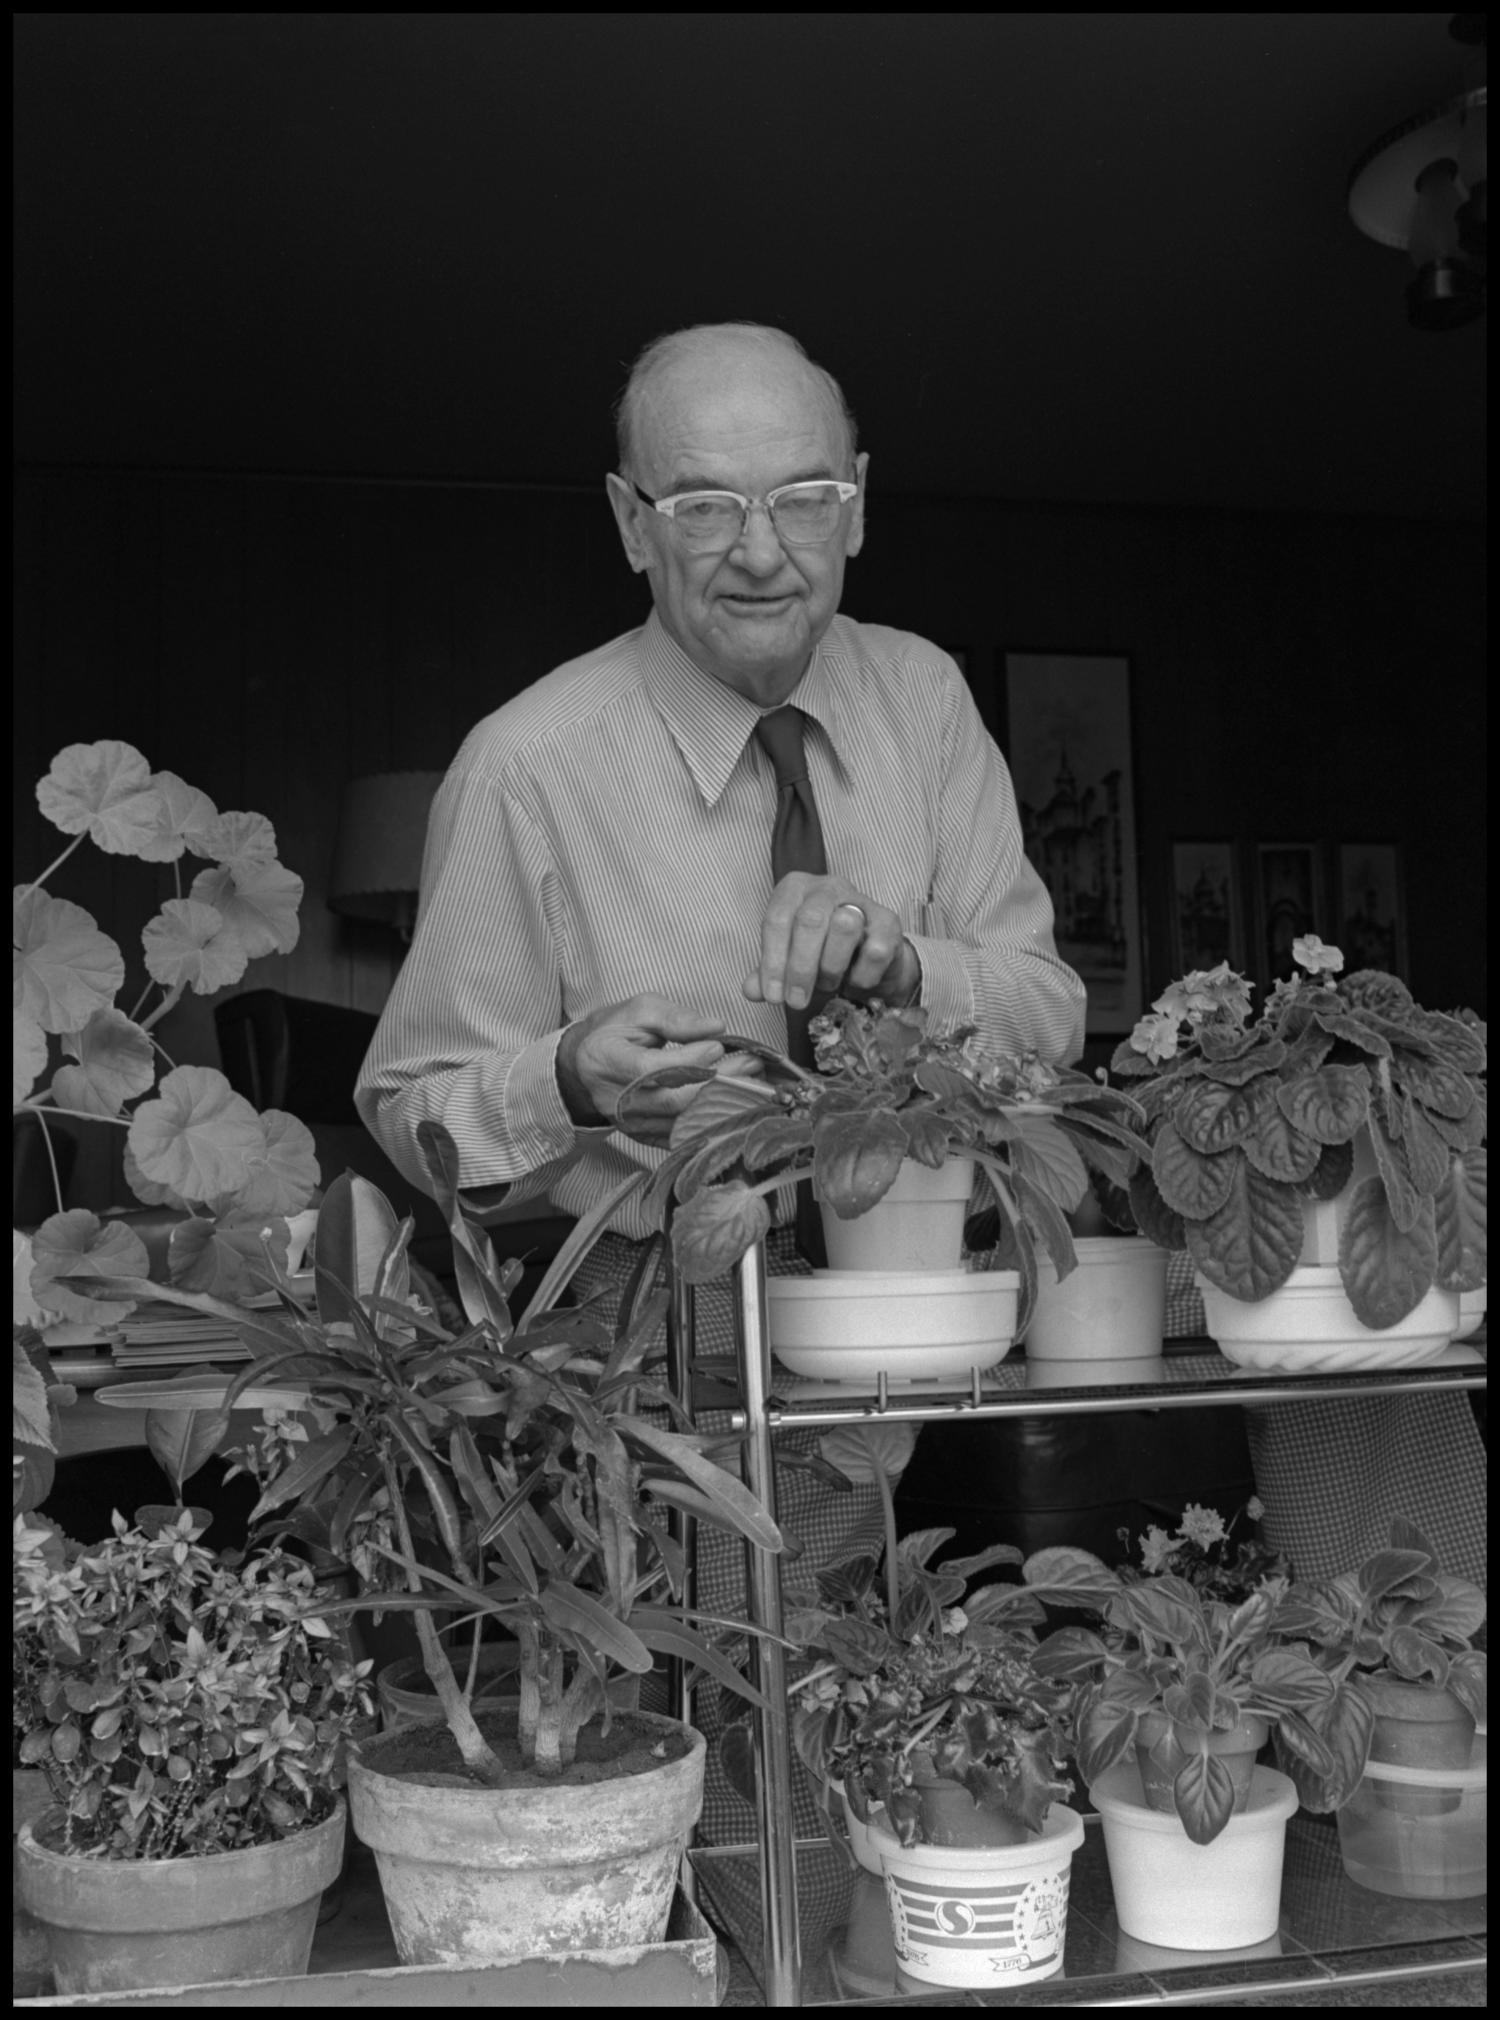 [Garland Brookshear standing with plants], Photograph of Garland Brookshear, a member of the Management faculty at NTSU, standing with his potted plants. There are small flowers as well as larger greenery. Brookshear is being photographed for his retirement.,